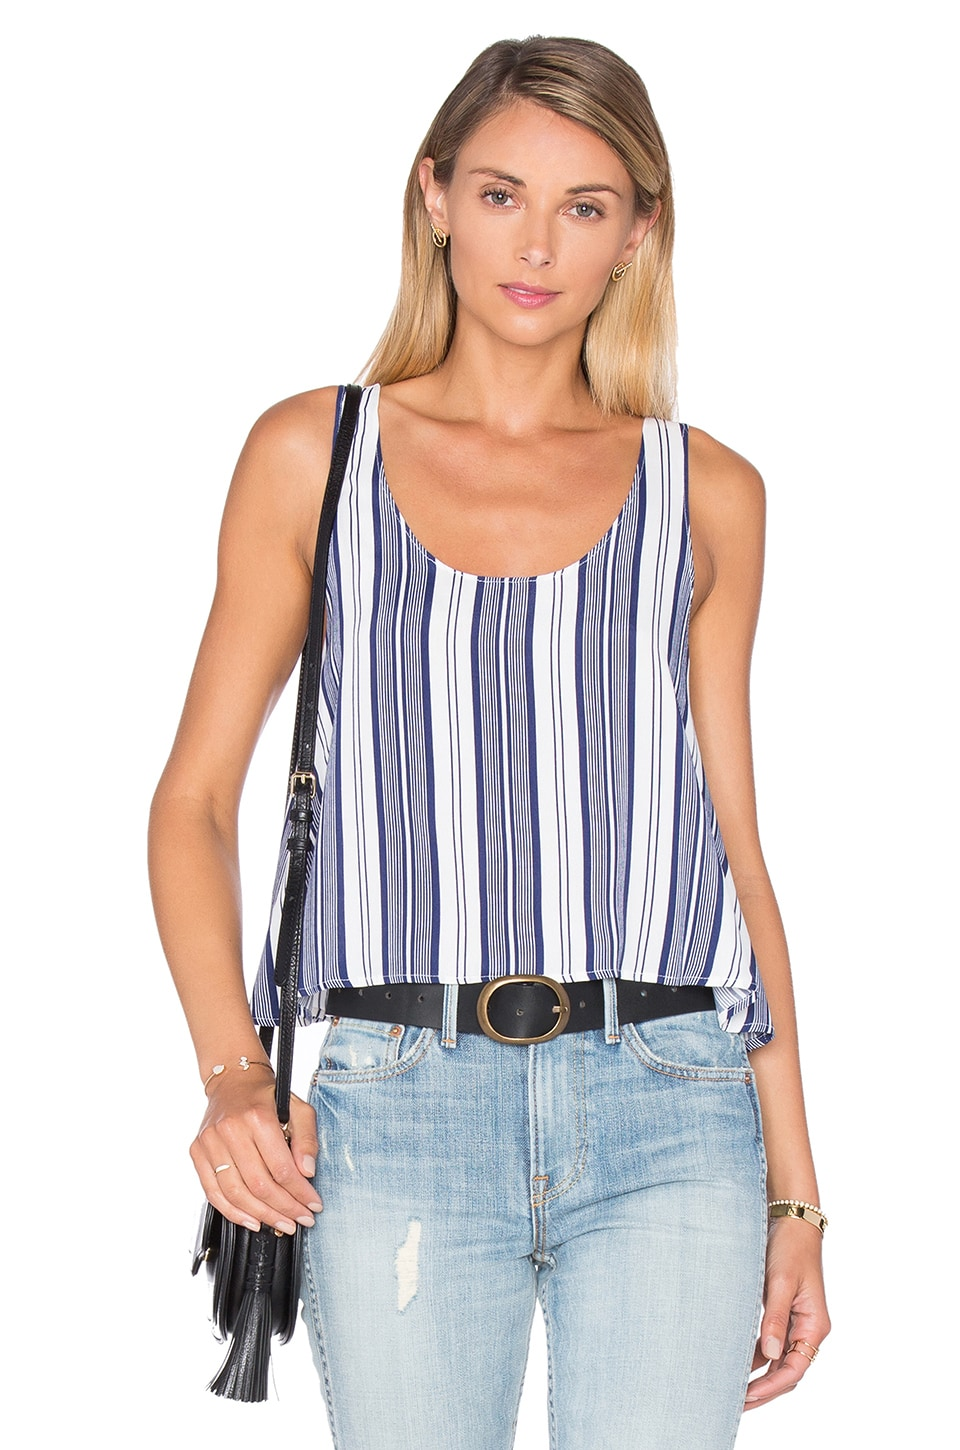 L'Academie The Swing Tank Blouse in Sailor Stripe